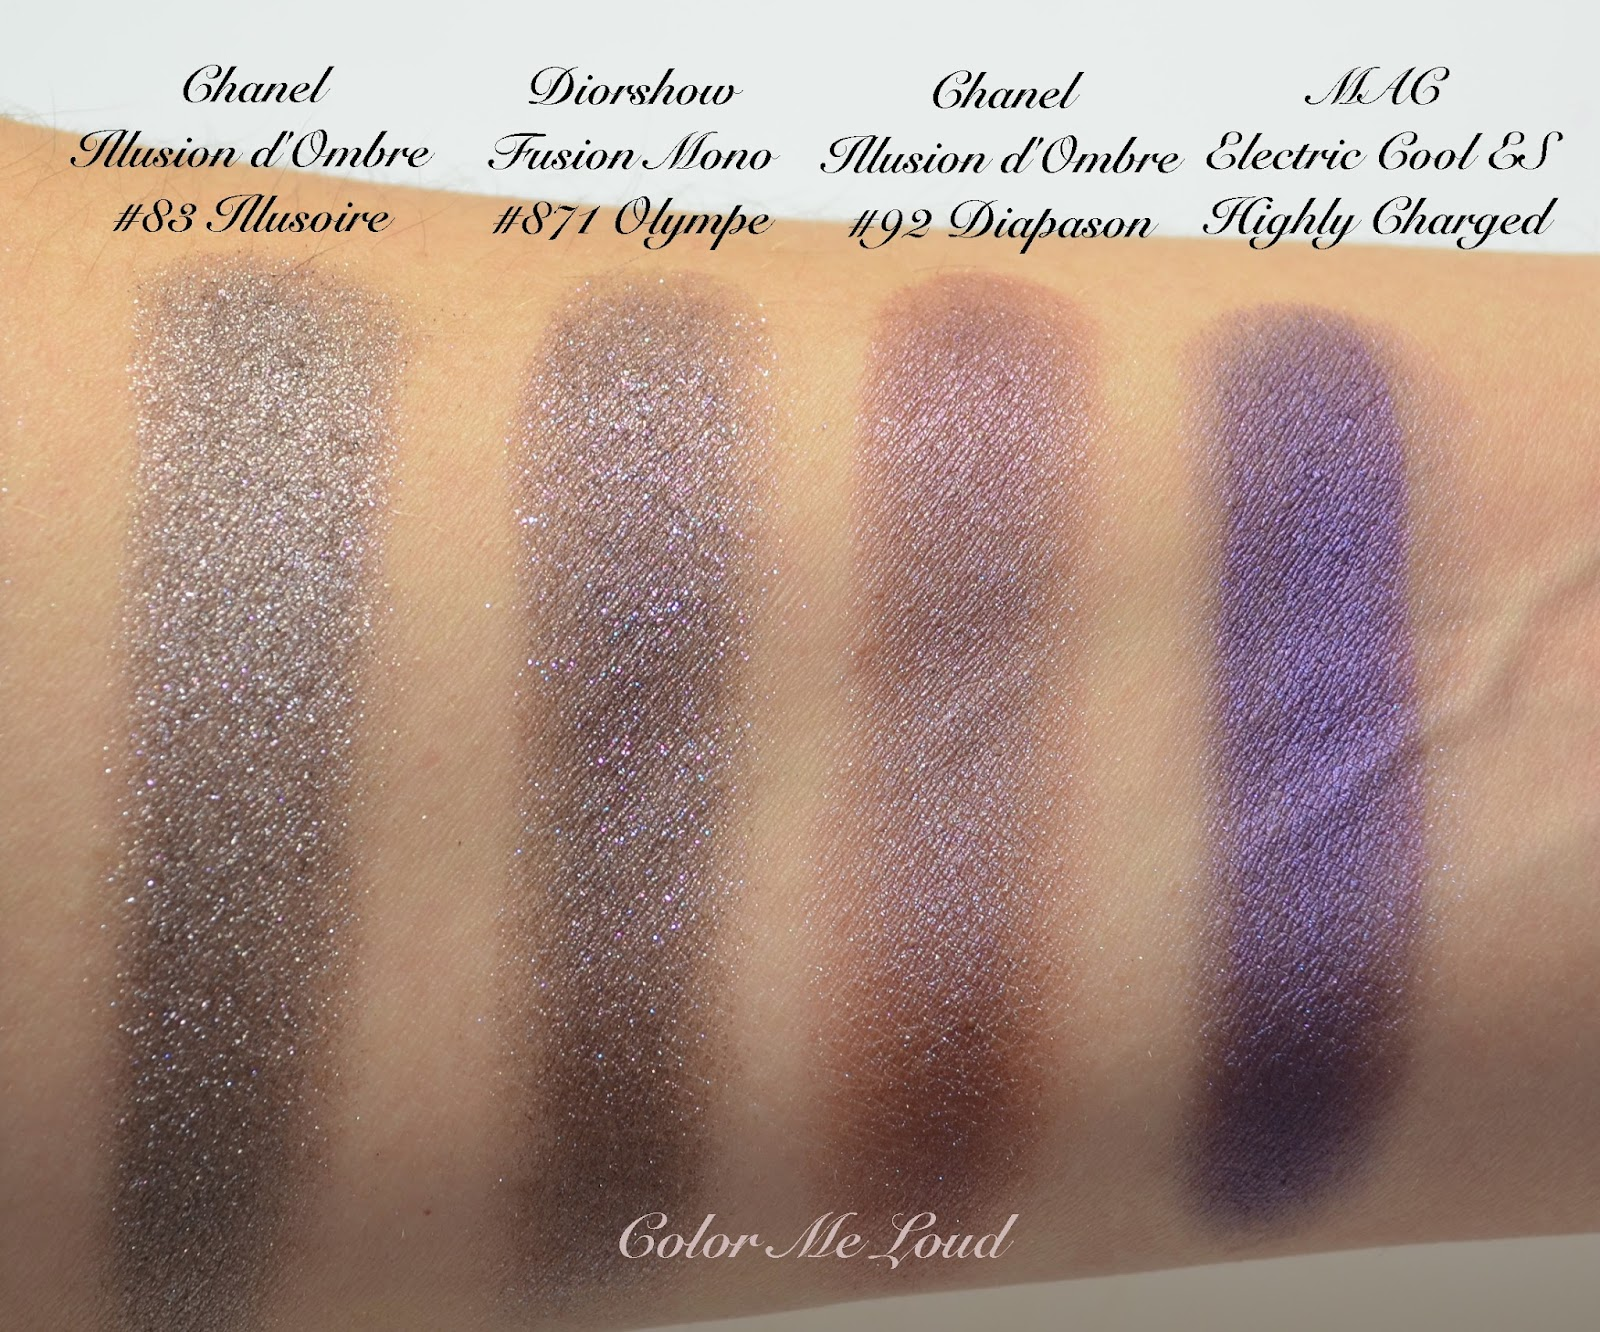 Comparison swatches: Diorshow Fusion Mono #871 Olympe